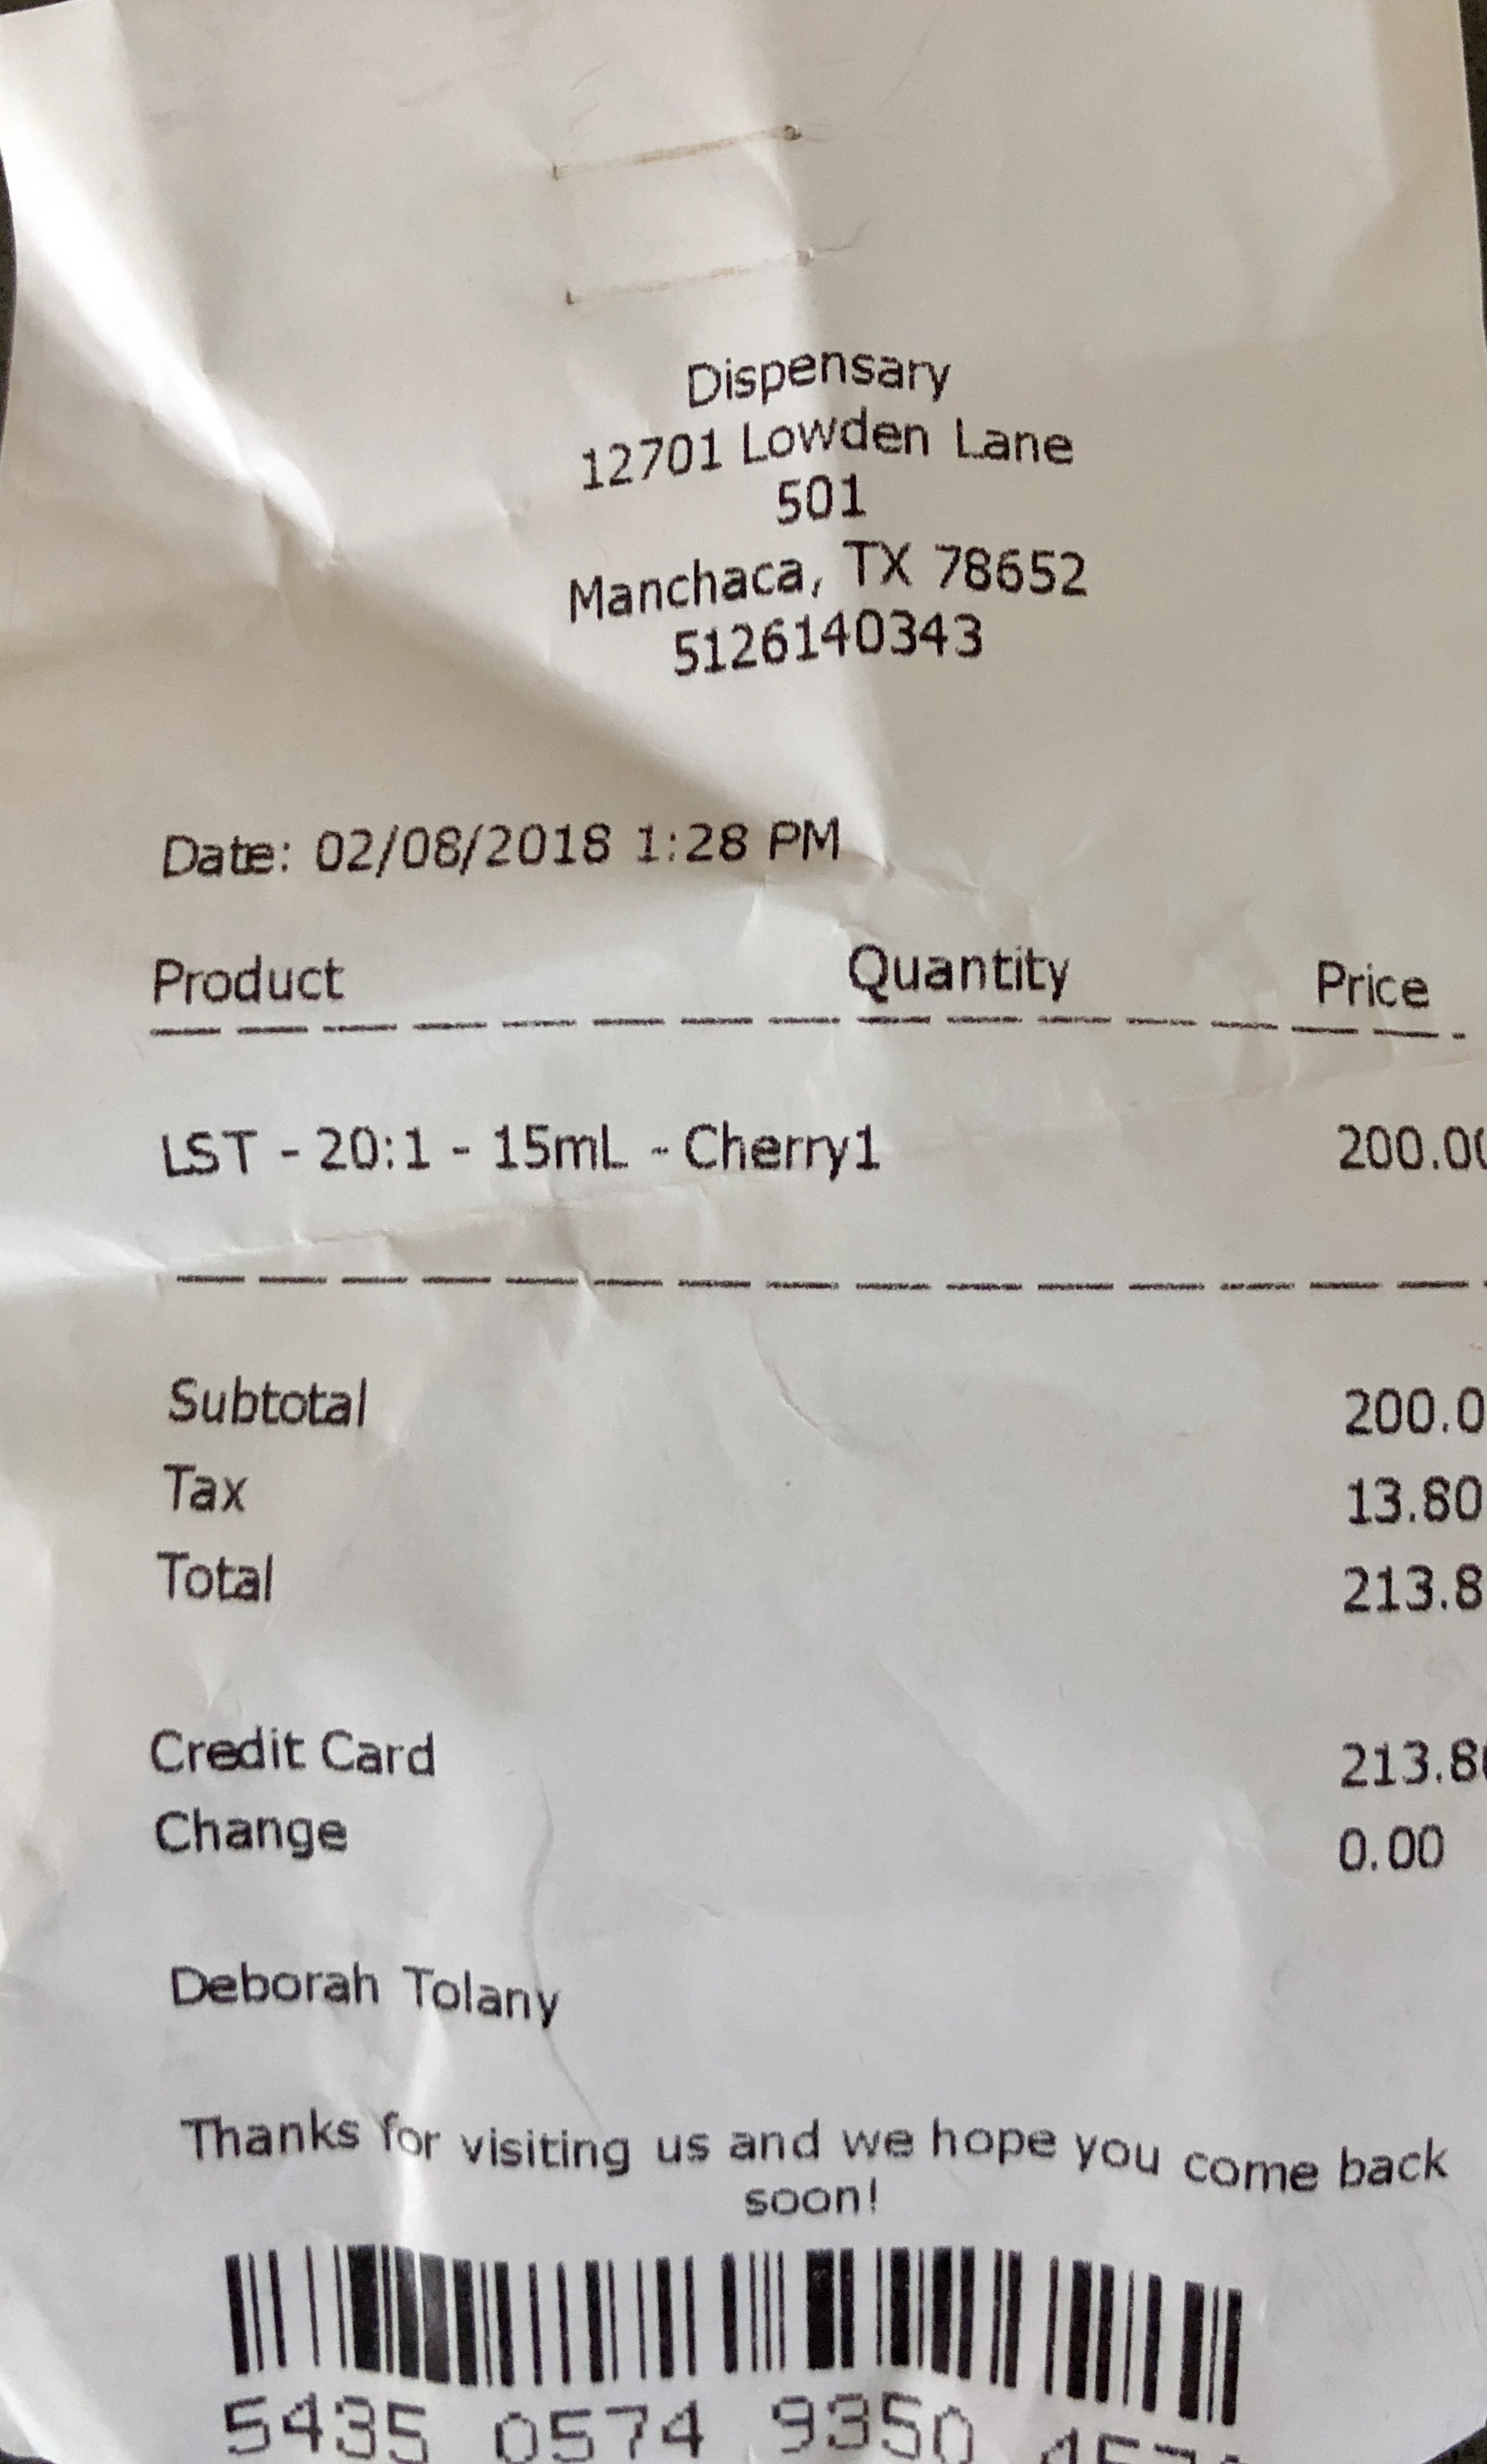 First purchase made in a Texas medicinal cannabis dispensary!